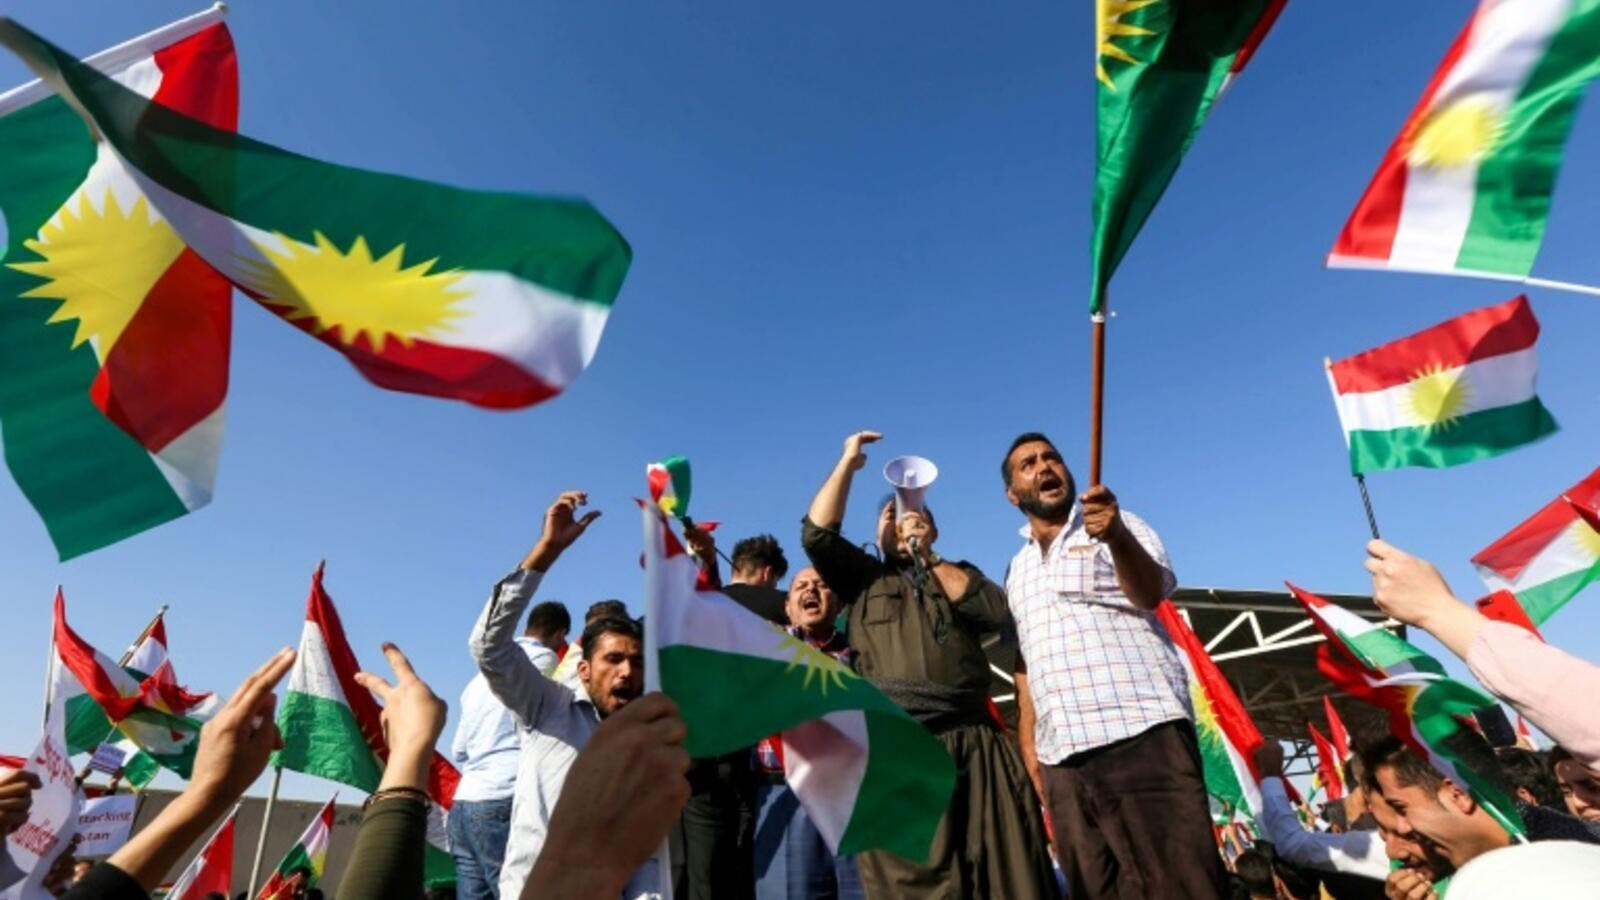 Iraqi Kurds protest in their regional capital Arbil. (AFP/ File Photo)